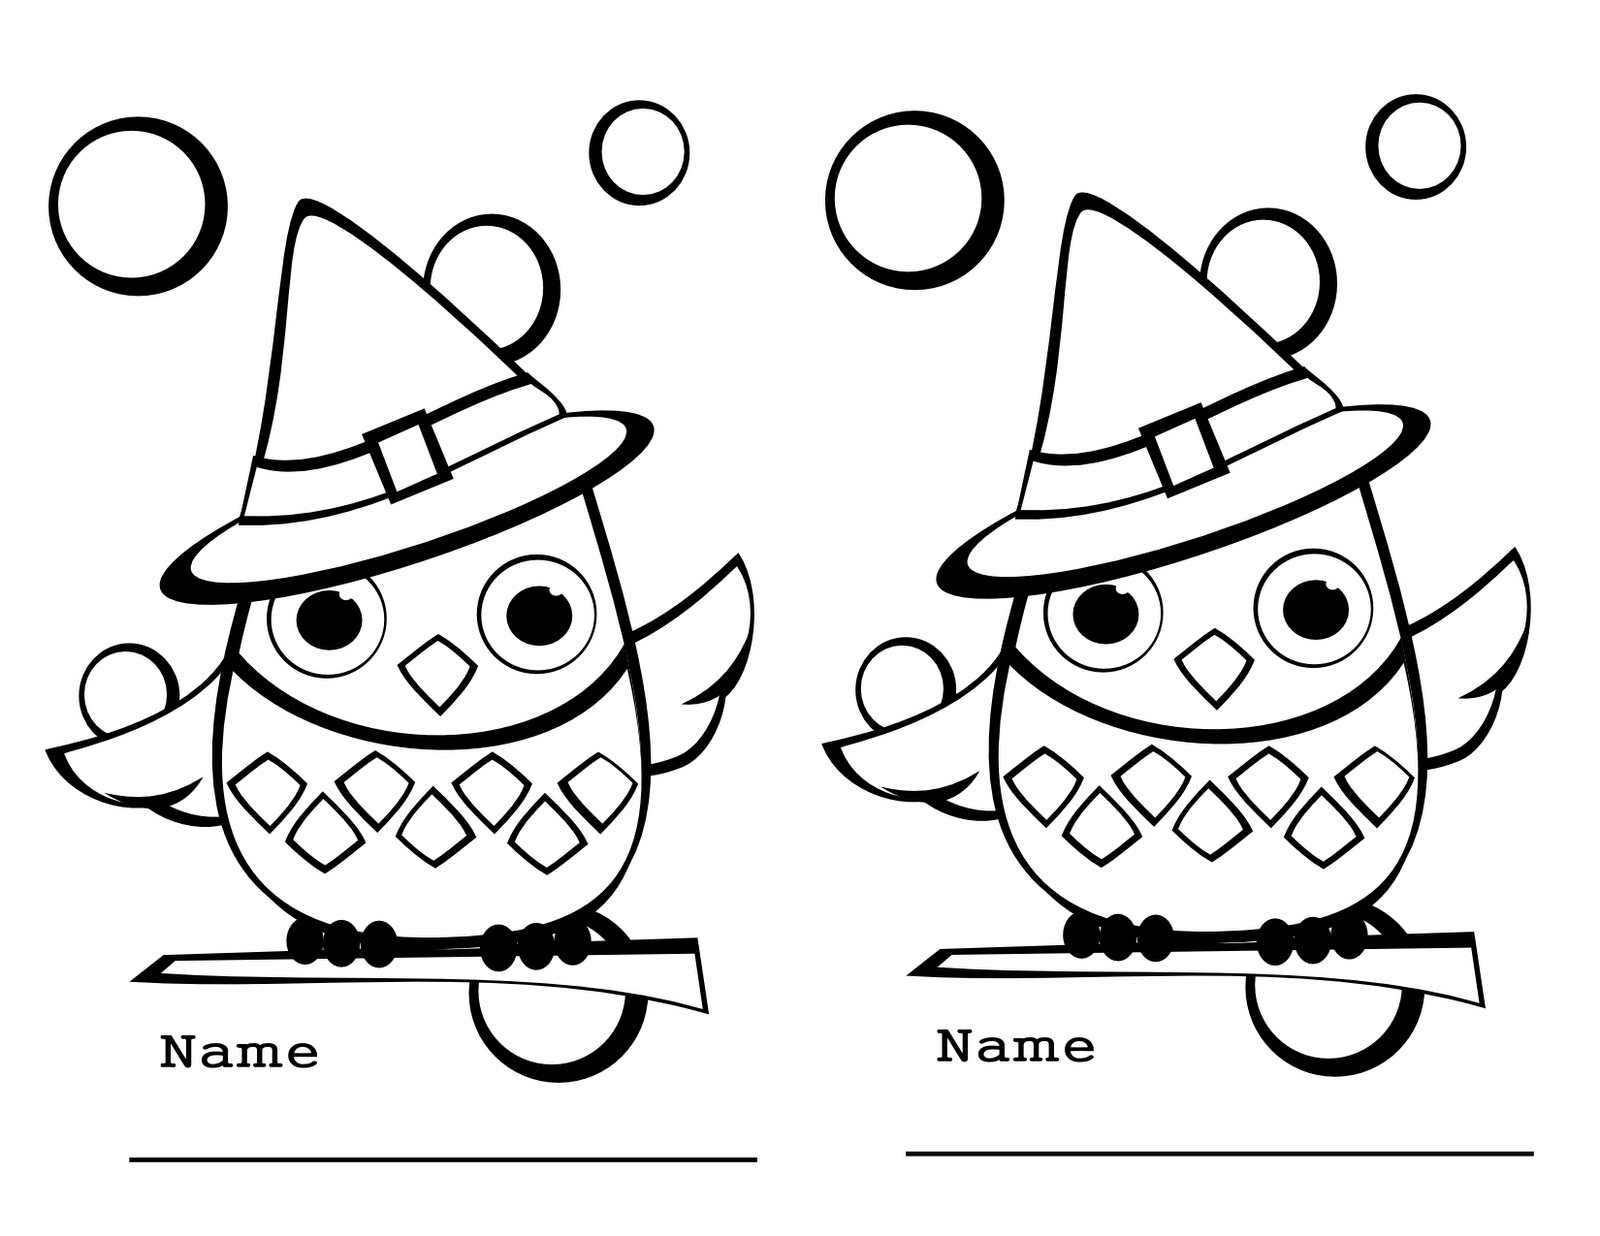 Printable color pages for kindergarten - Free Coloring Pages For Kindergarten